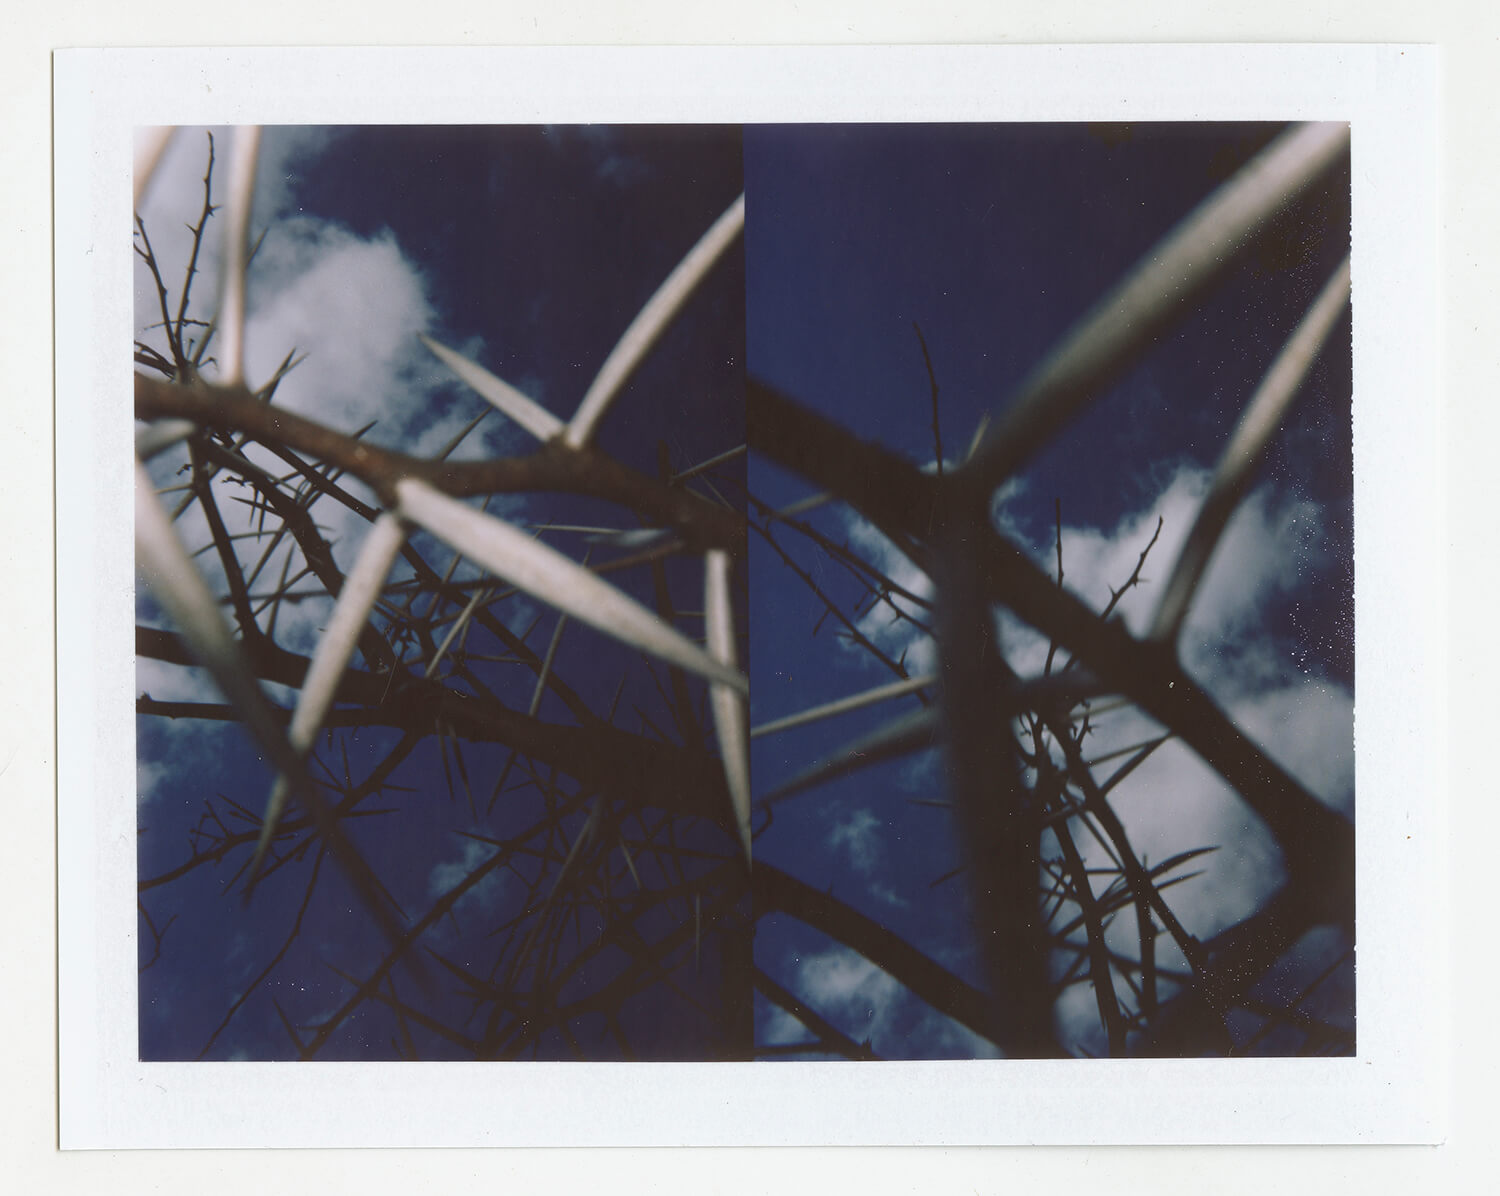 I.D.067, The Polaroid Revolutionary Workers, 2013, Polaroid Picture, 107mm x 86mm